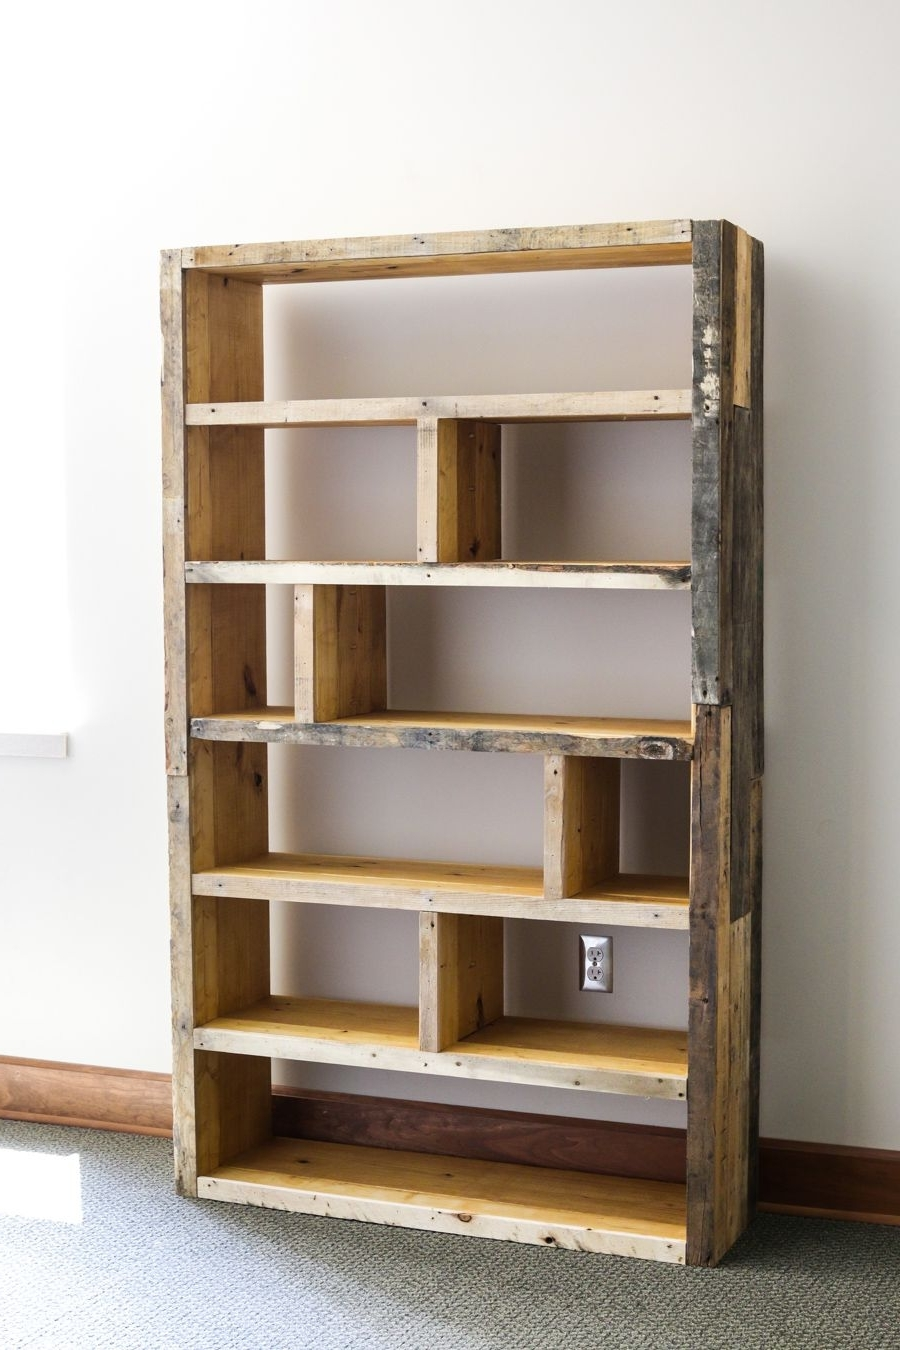 Diy Bookcases In Current Diy Rustic Pallet Bookshelf (View 3 of 15)